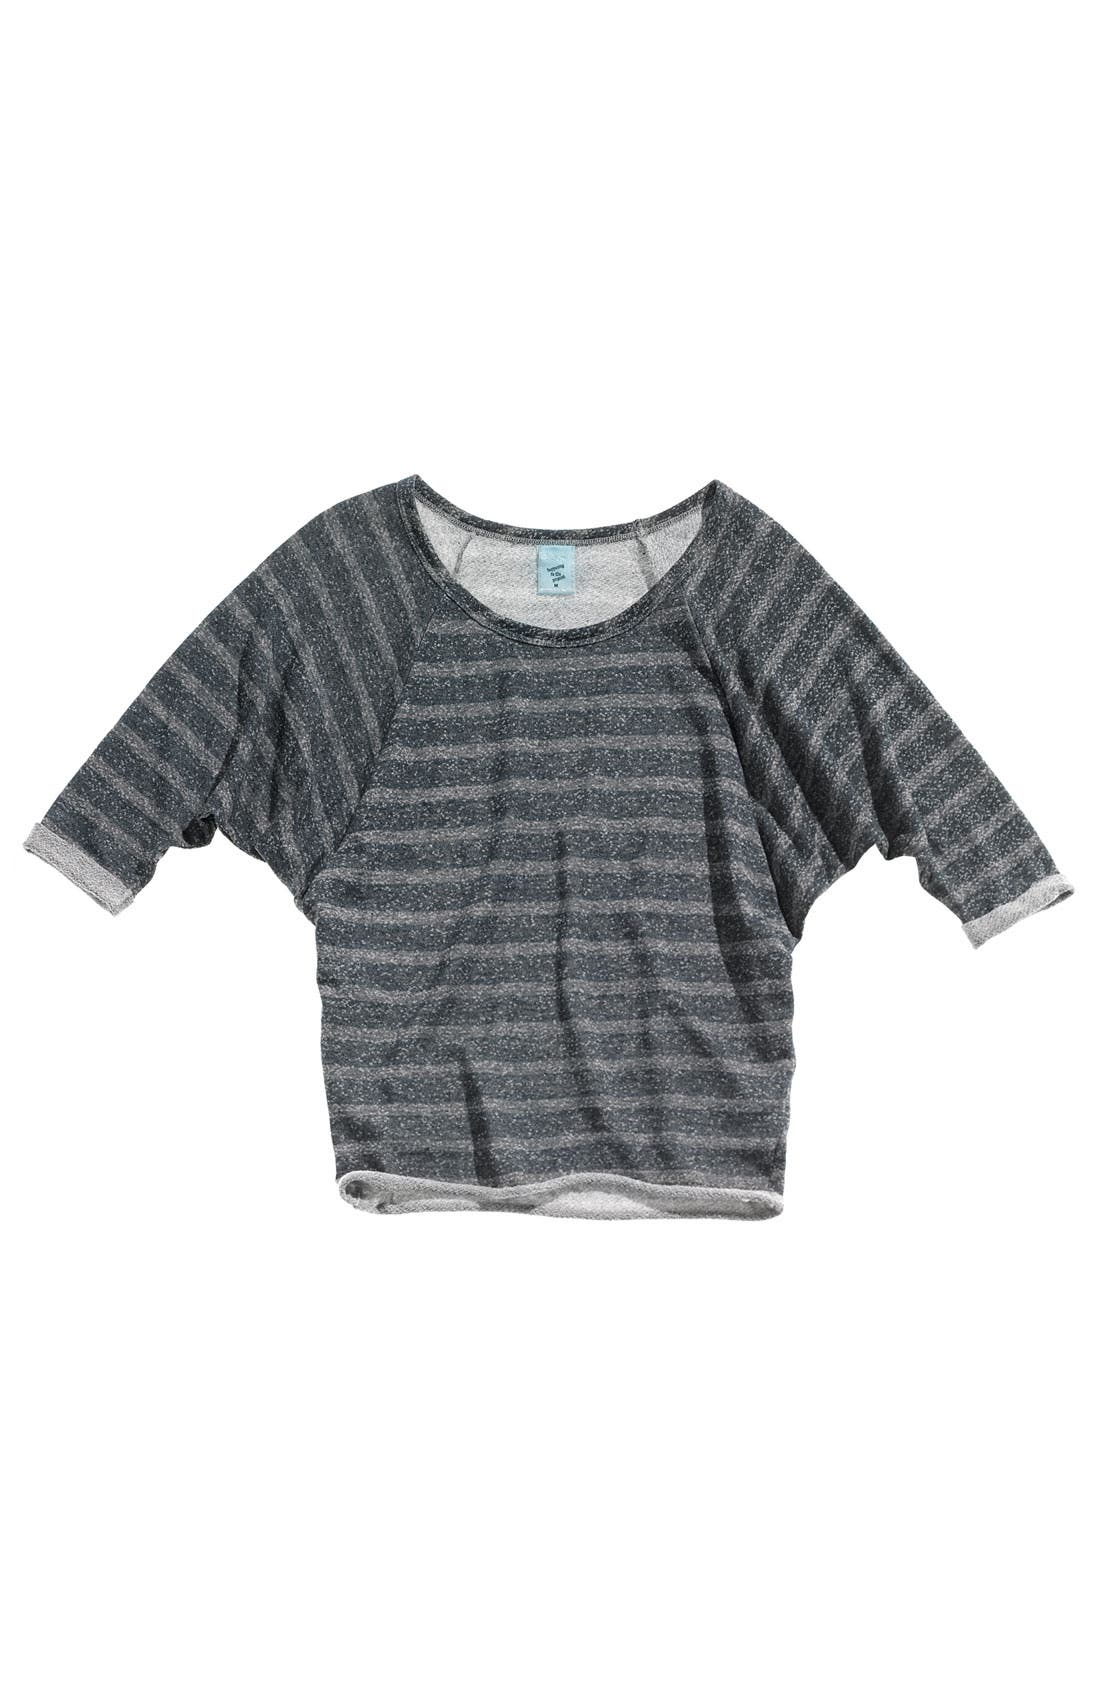 Alternate Image 2  - h.i.p. Raglan Sleeve Fleece Top (Juniors)